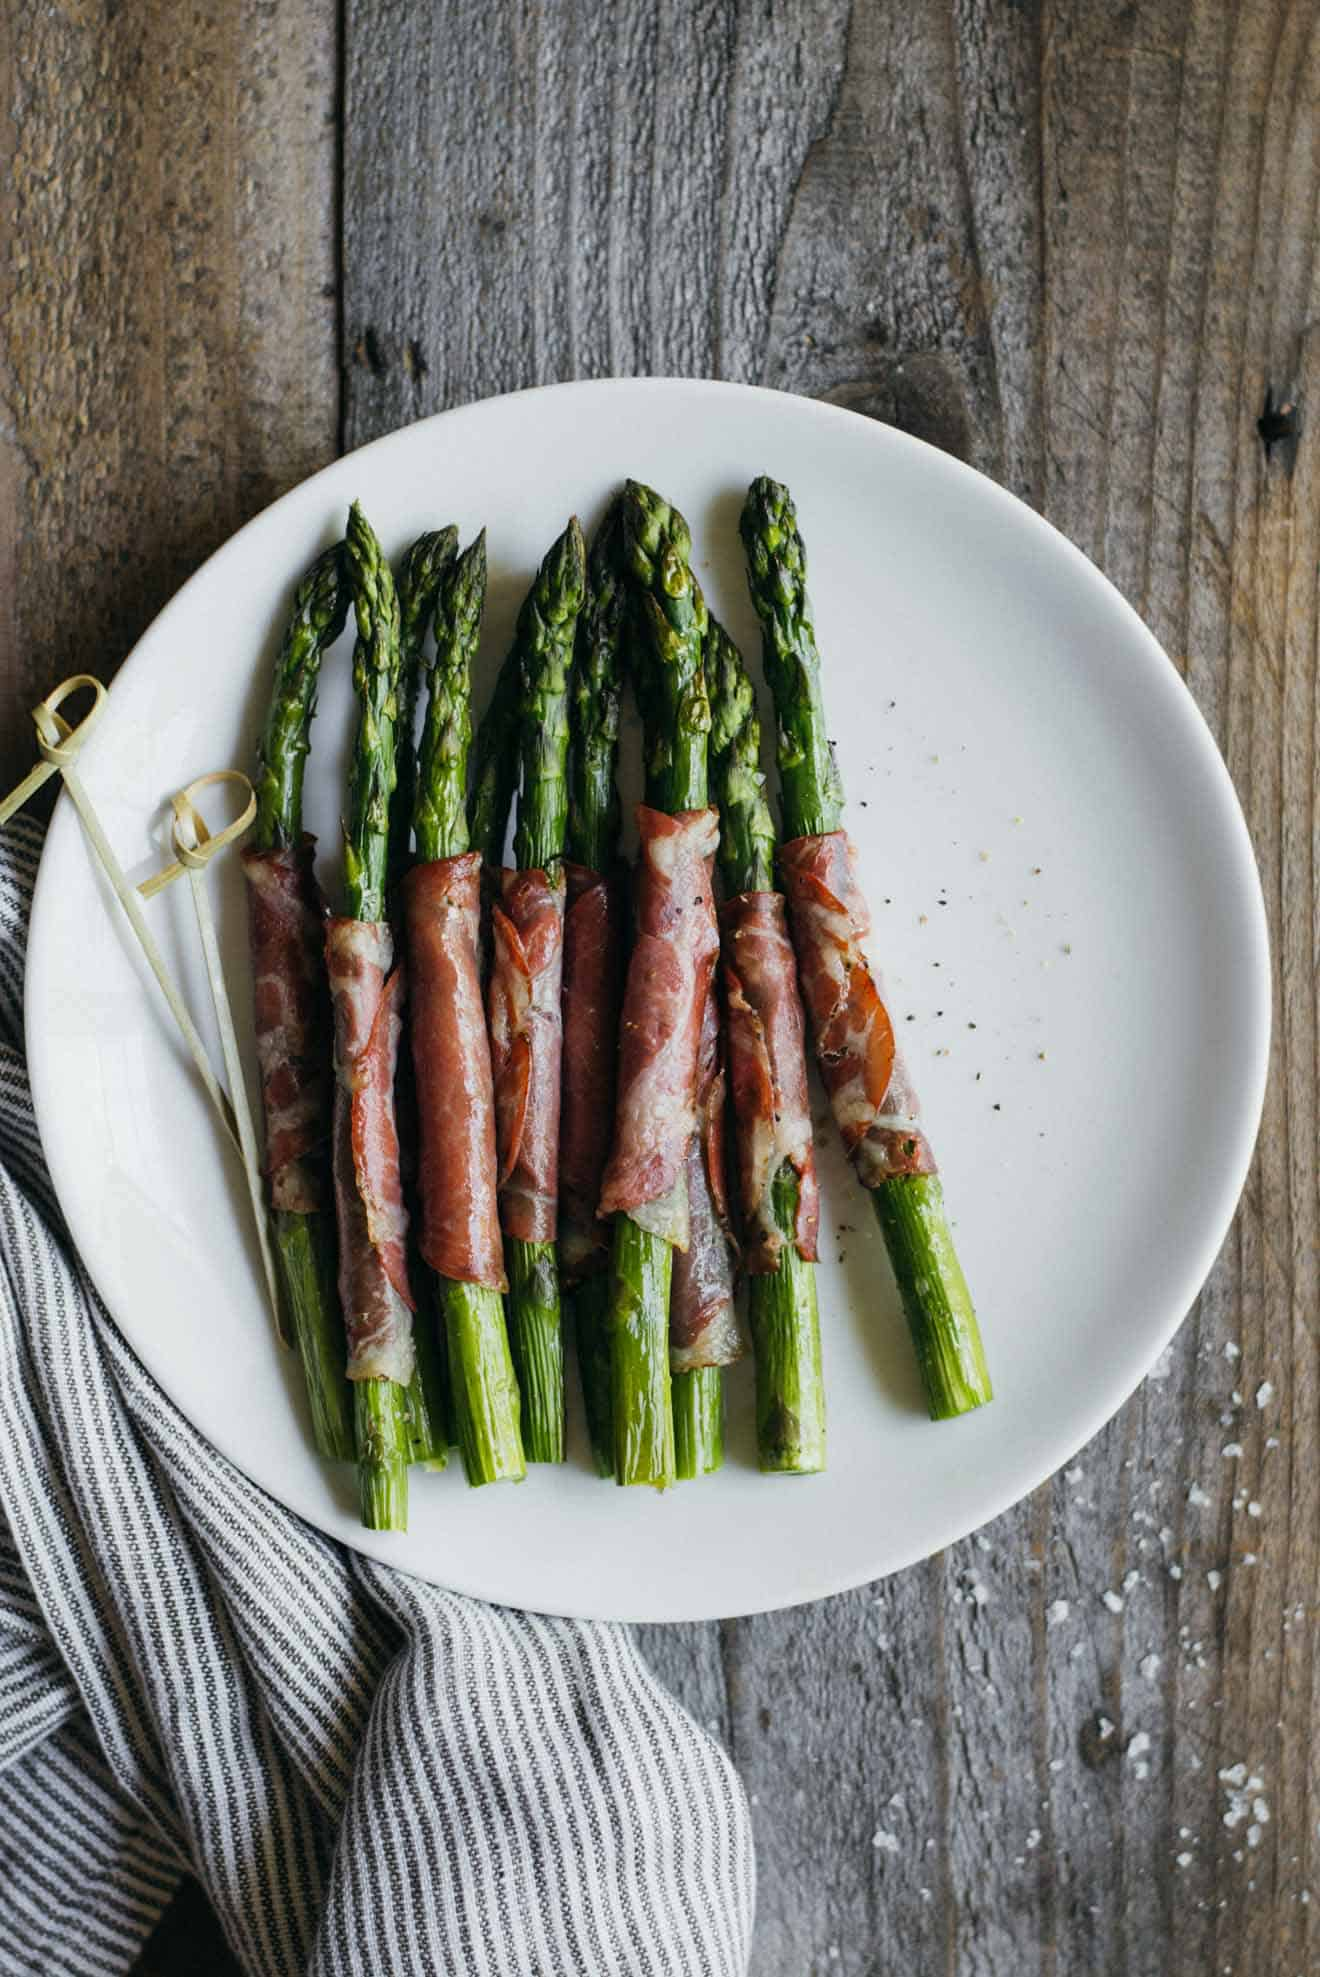 Dry Coppa Wrapped Asparagus - easy appetizer ready in 15 minutes and made with just 5 ingredients!